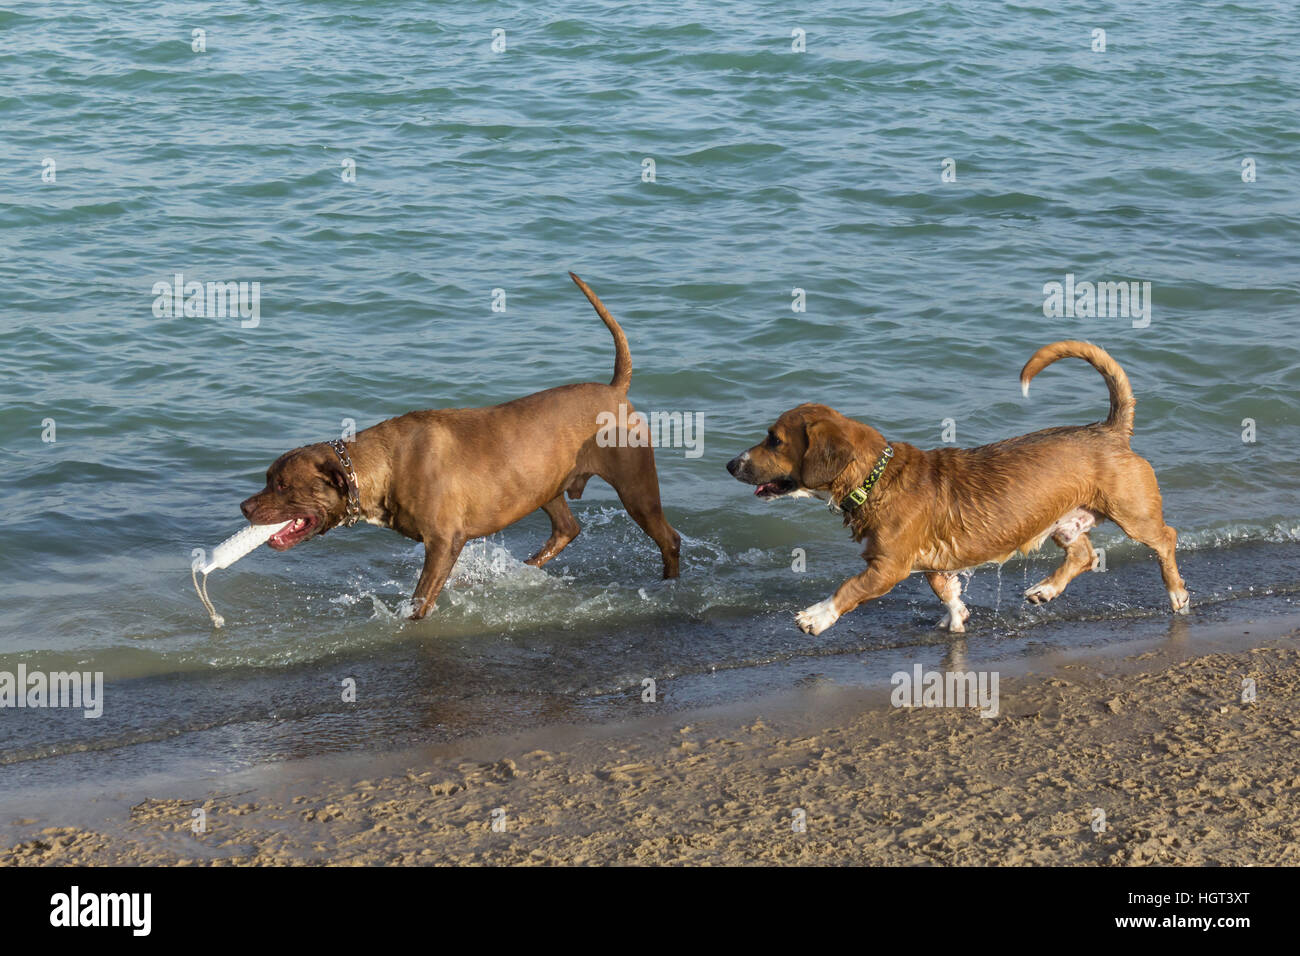 Beagle Welsh Corgi mutt tagging along behind a pit bullterrier bullmastiff mix carrying a fetch toy on the shore - Stock Image